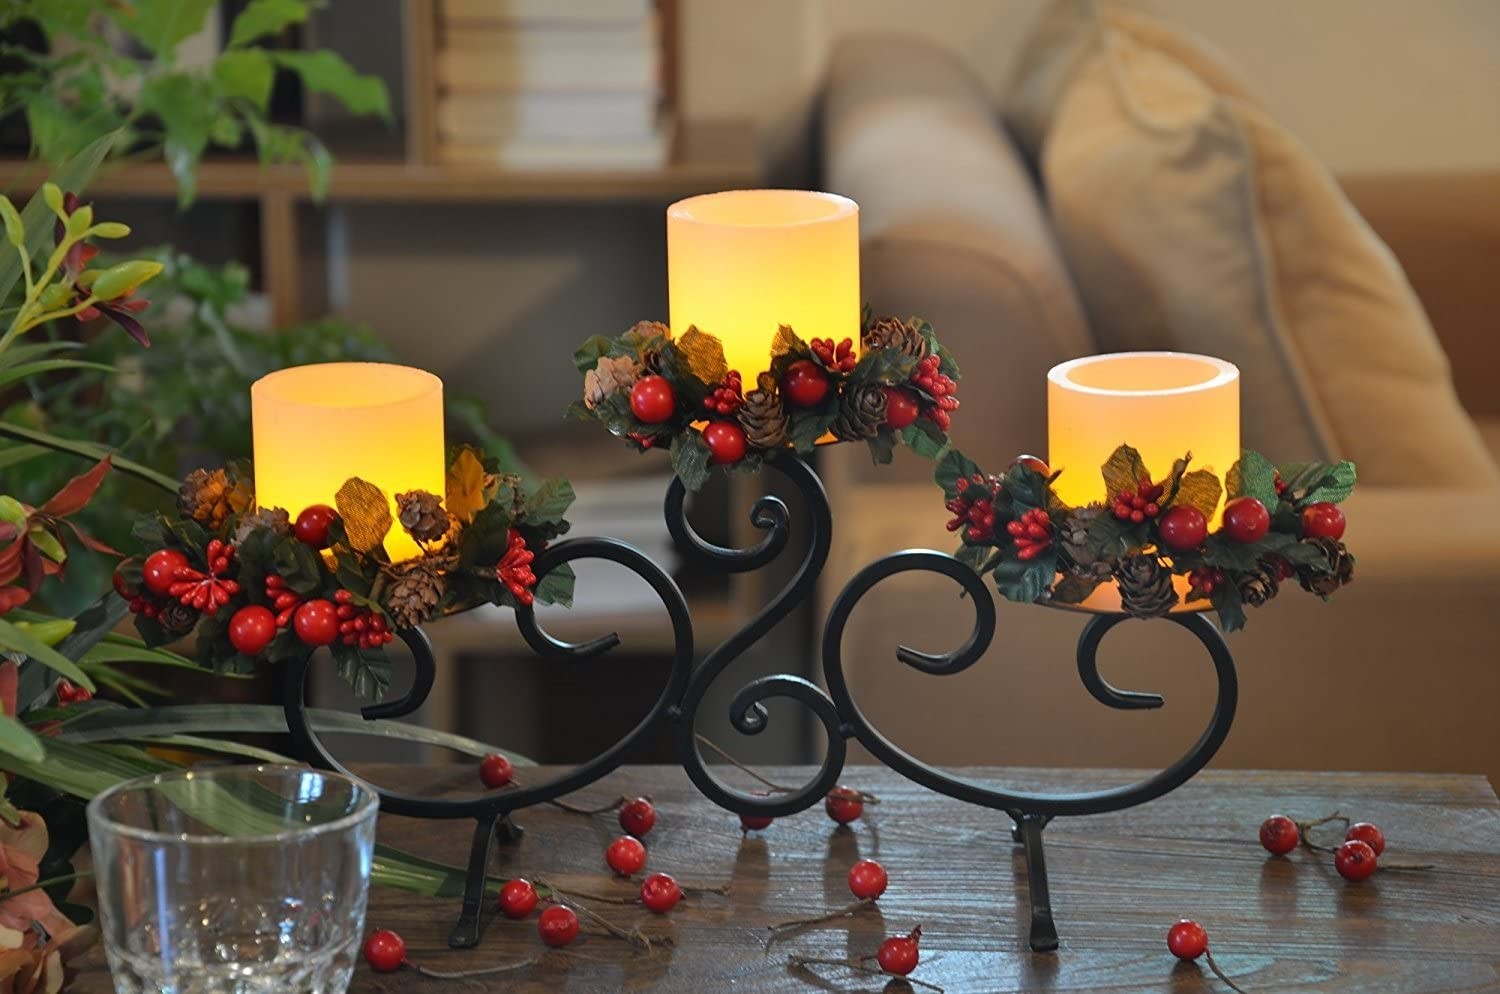 YAKii Classic Black Iron Stand with 3 Real Wax Flameless Candles, Scroll Candle Holder with LED Candles, for Home Decoration.